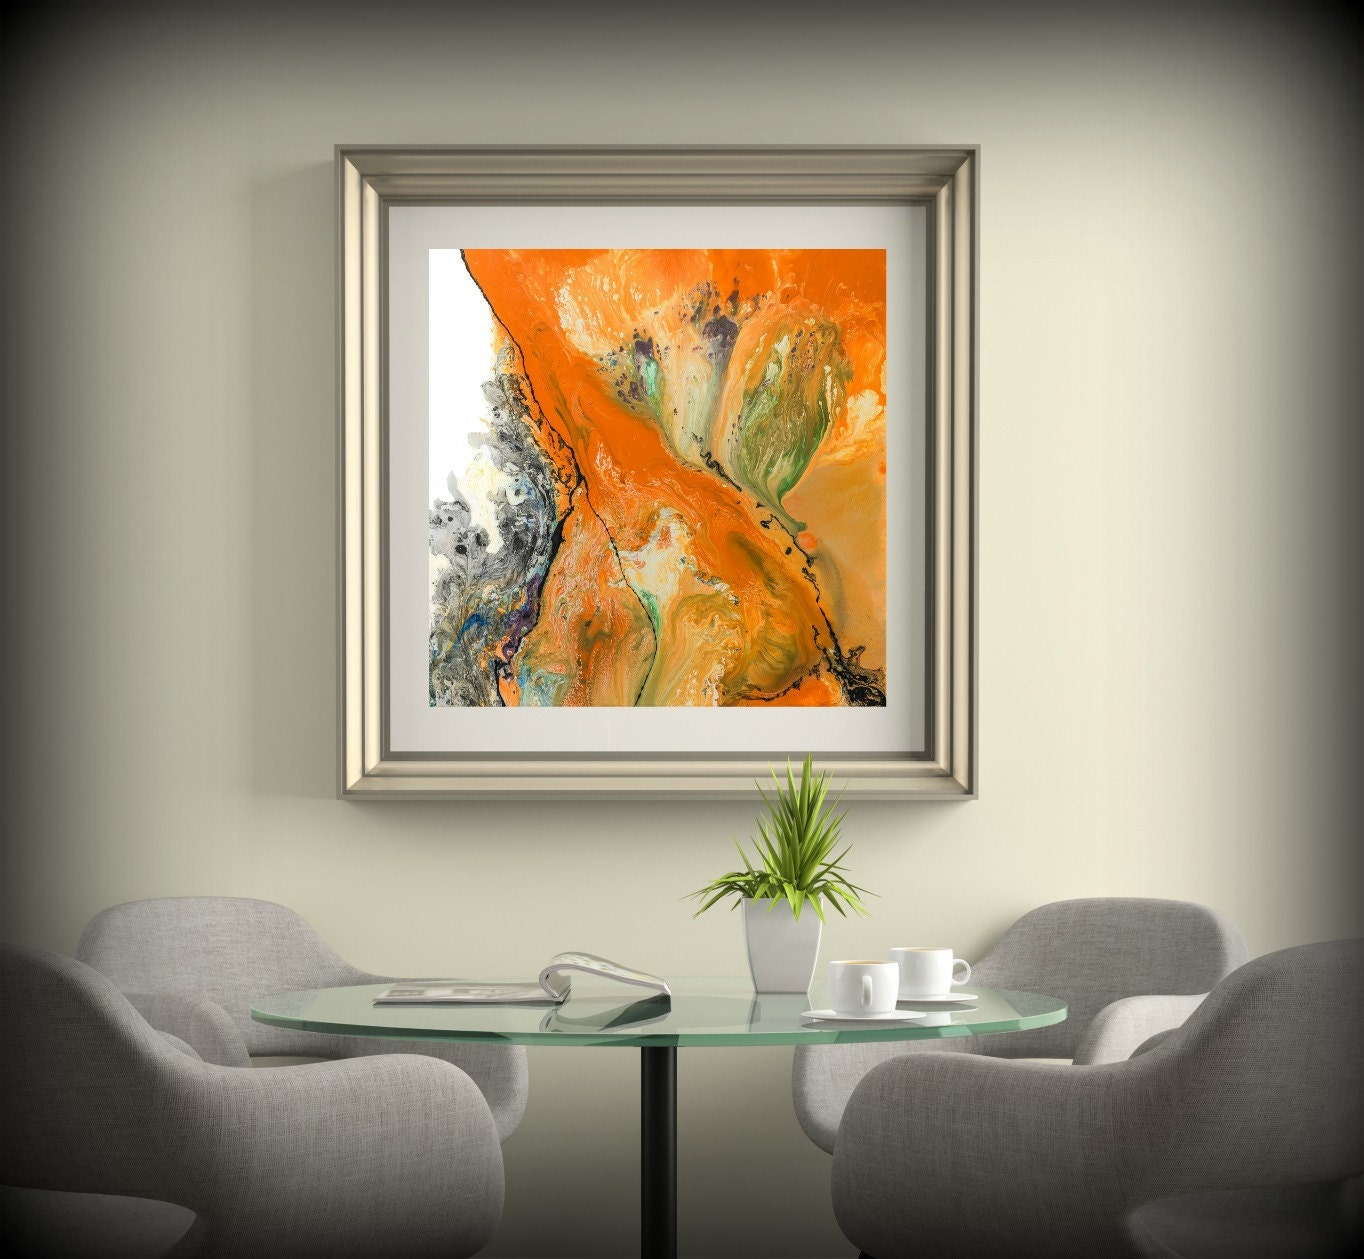 Living room decor square wall decor orange wall art dining for Home decor wall hanging